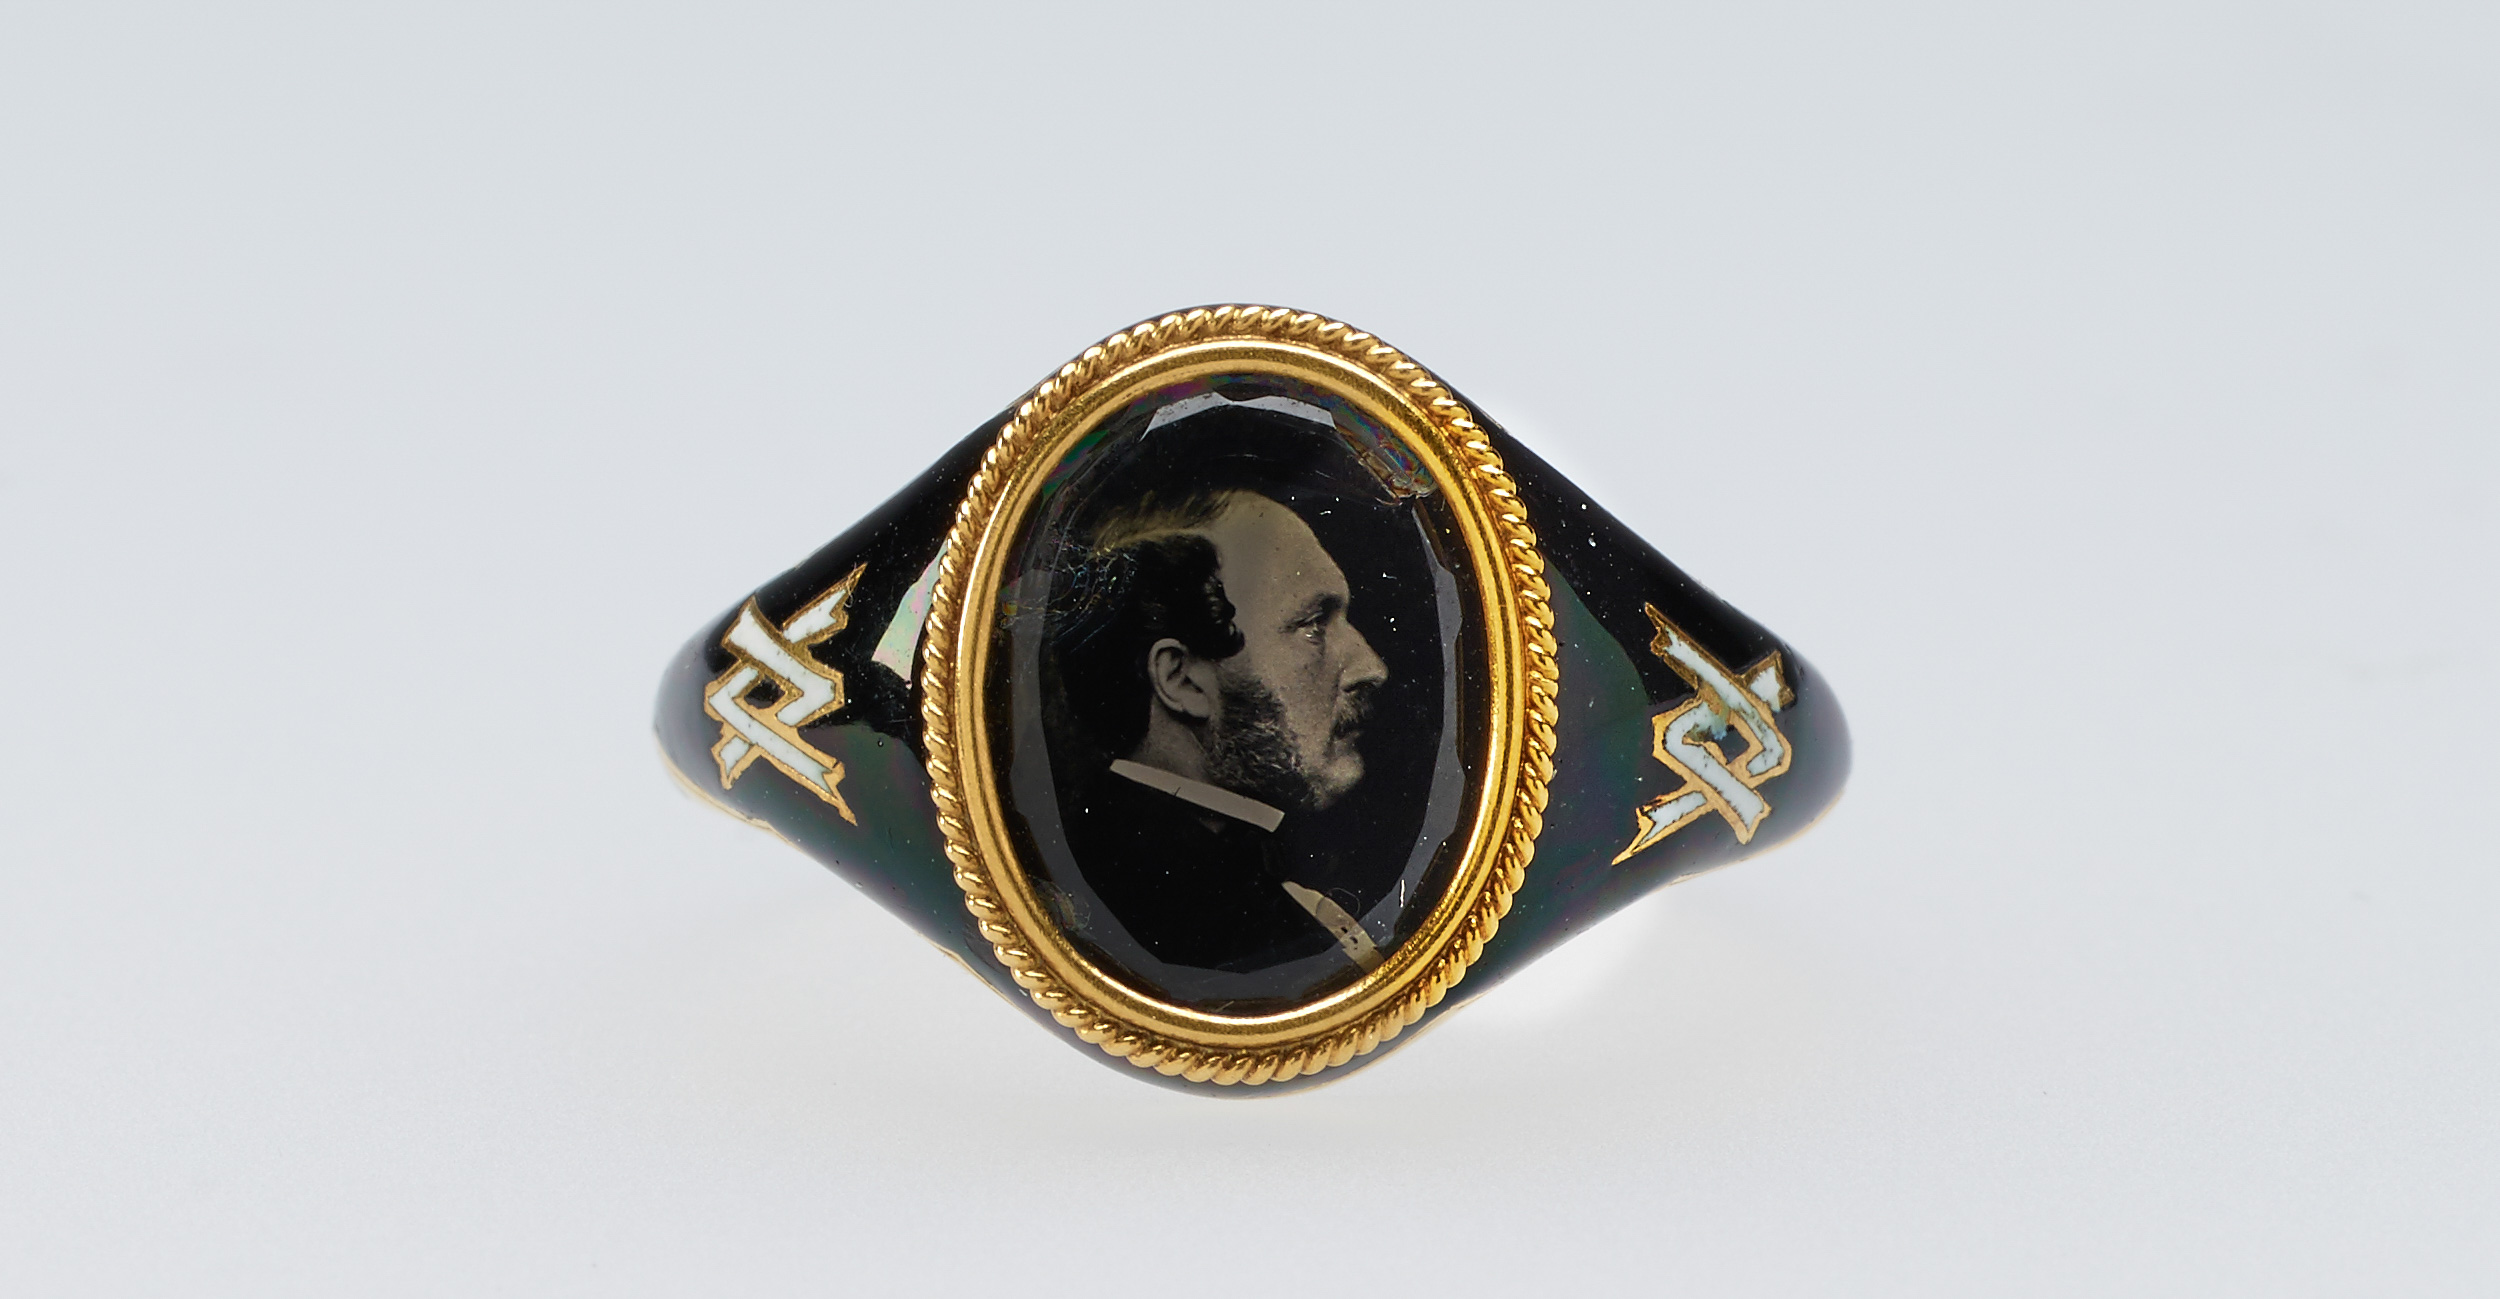 A ring featuring Albert's image